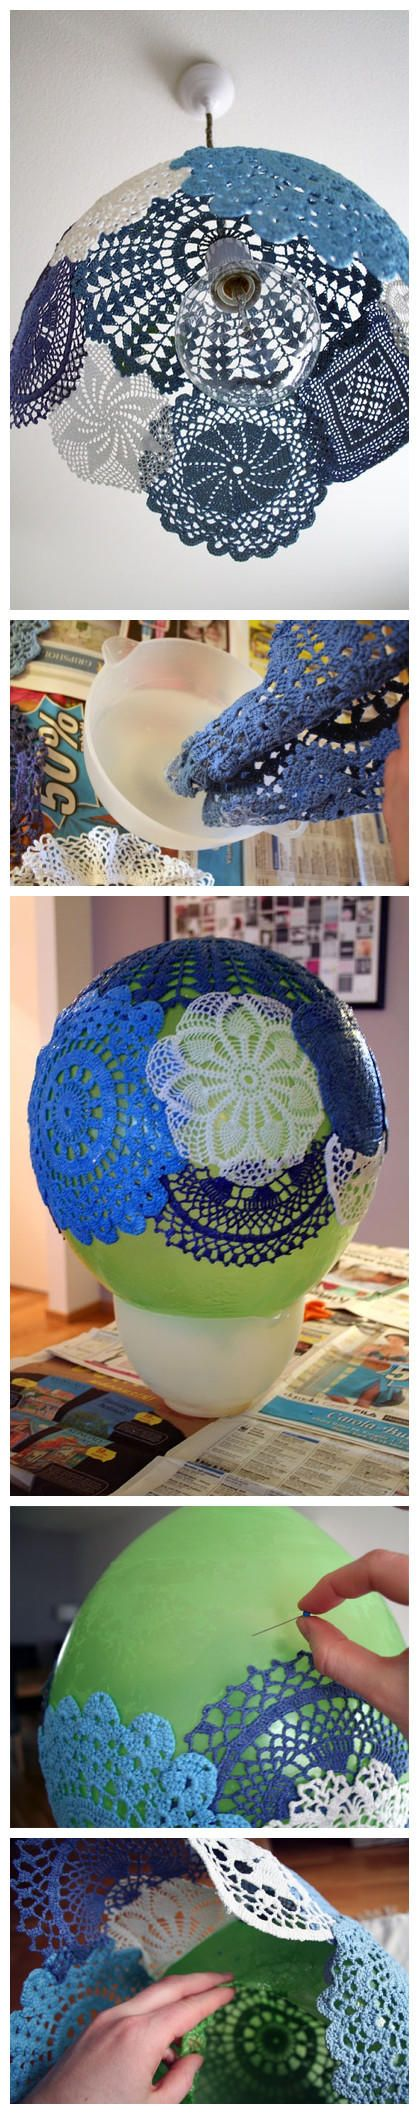 DIY: Knitted Lace Lampshade